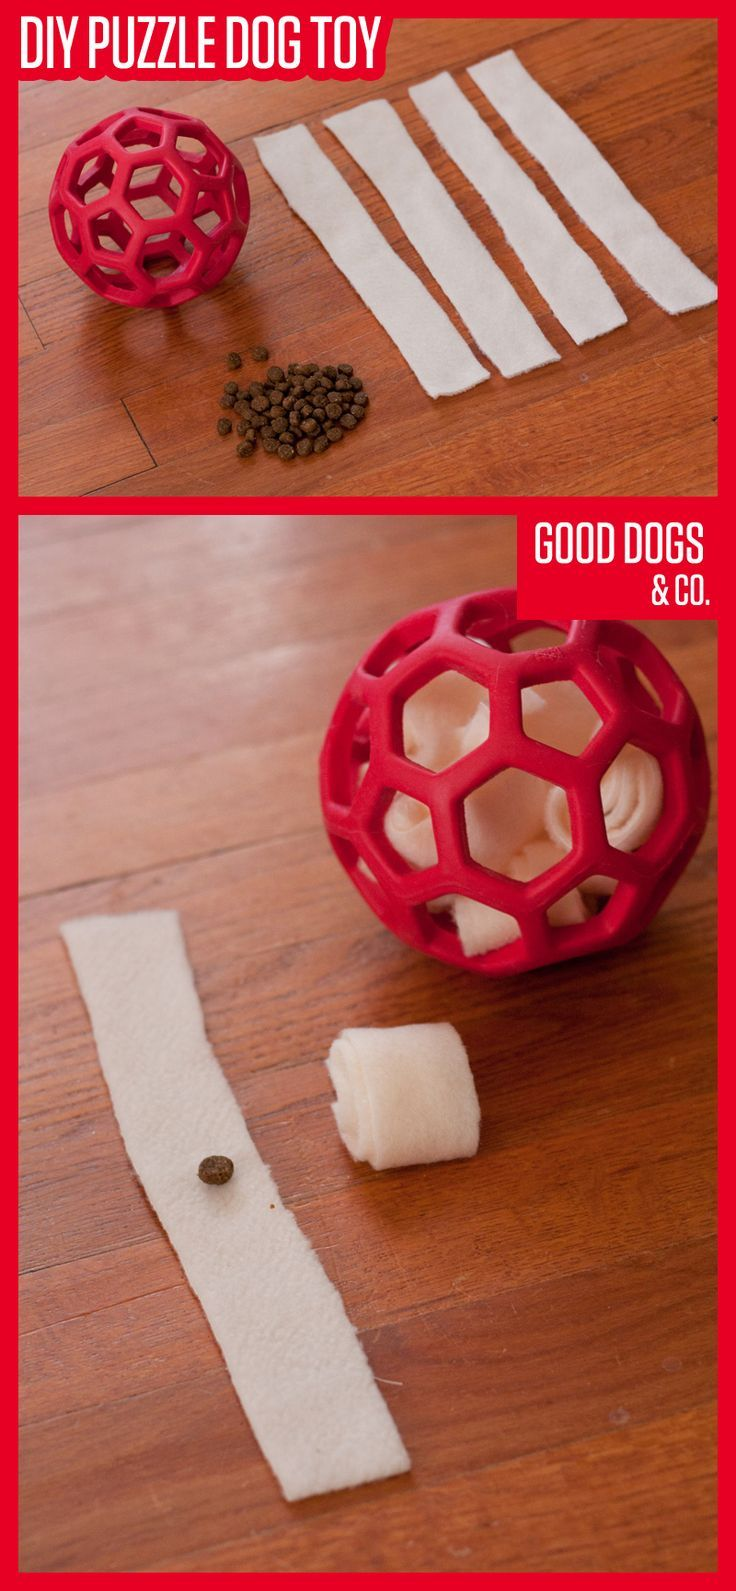 Make your dog a puzzle toy he can work on over and over again. This DIY dog toy only takes two materials, and it's easy to make!